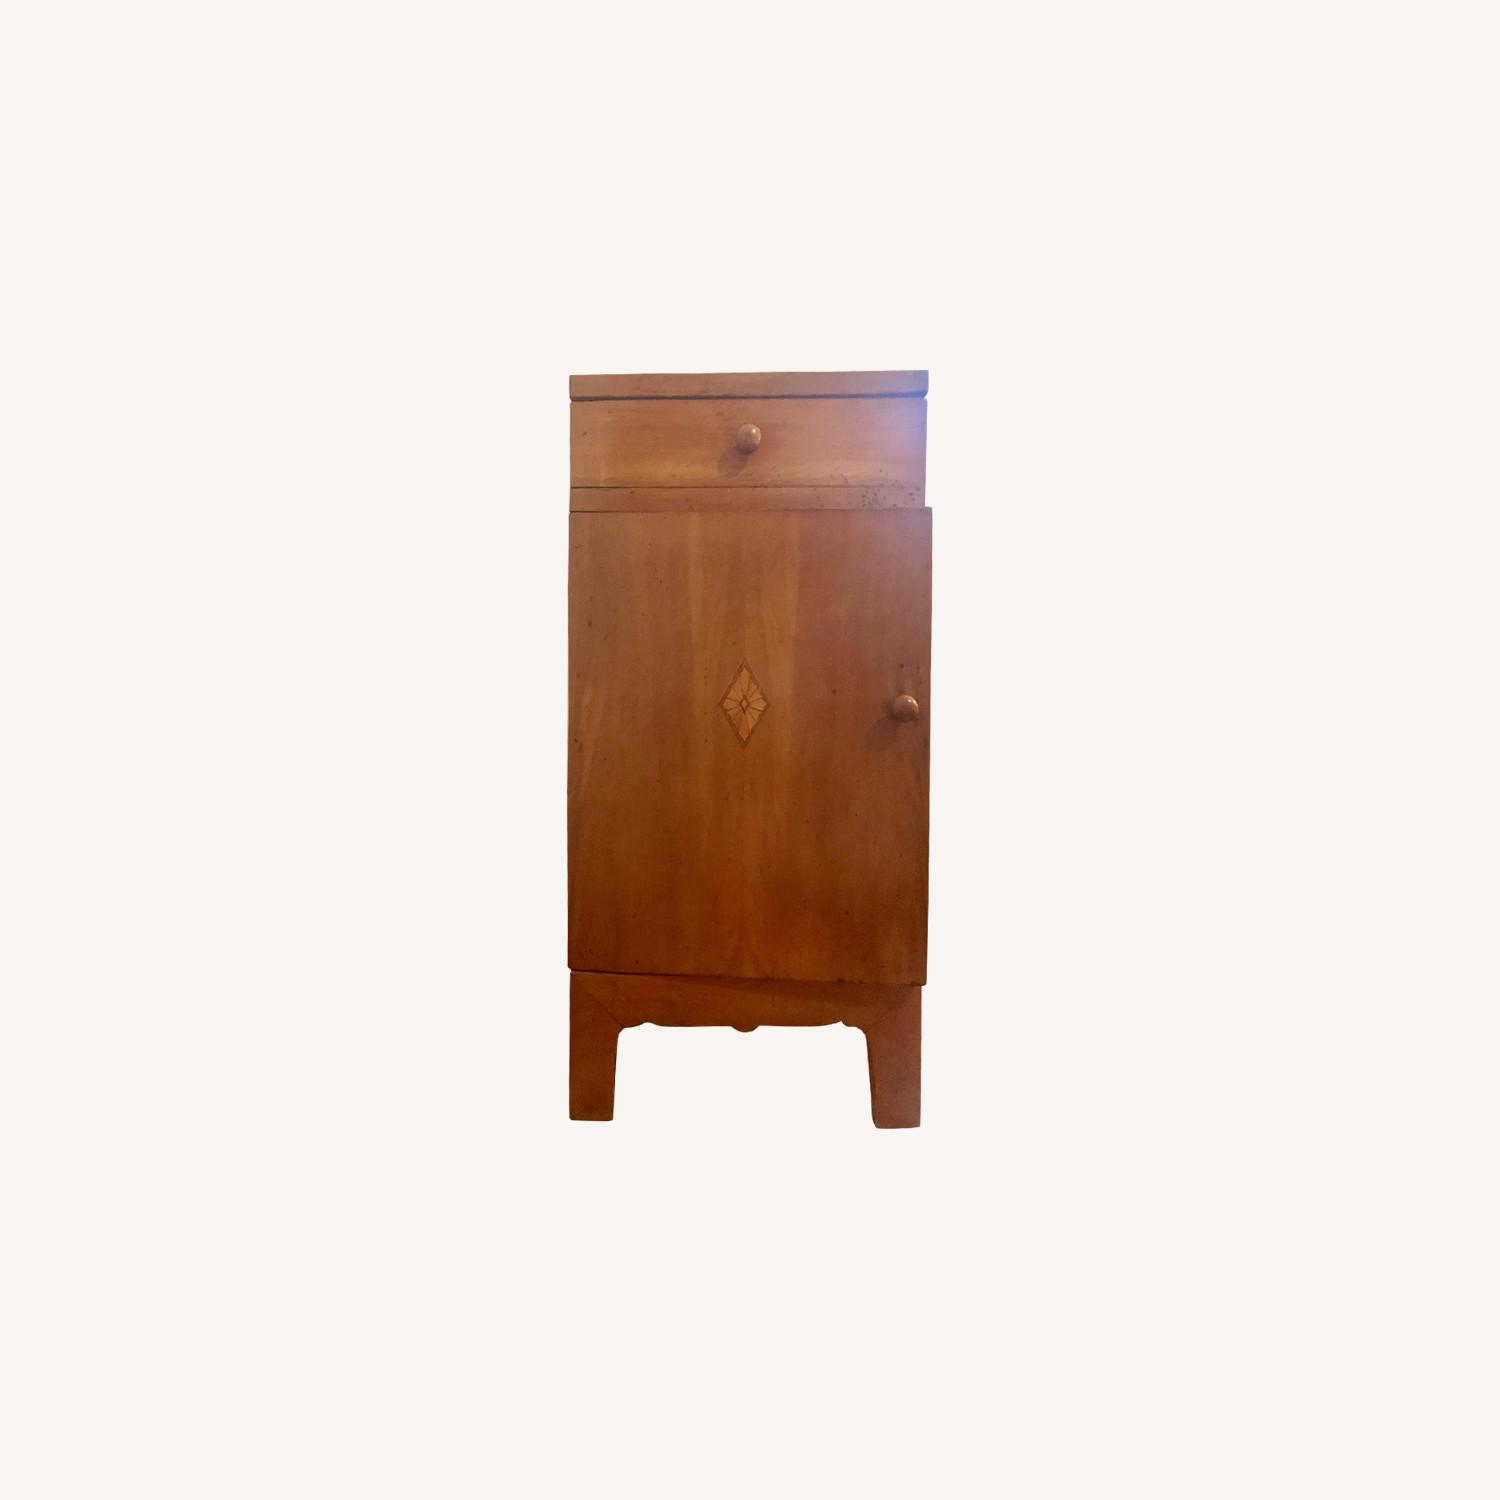 Early 20th C. Danish Pearwood Nightstands - image-0